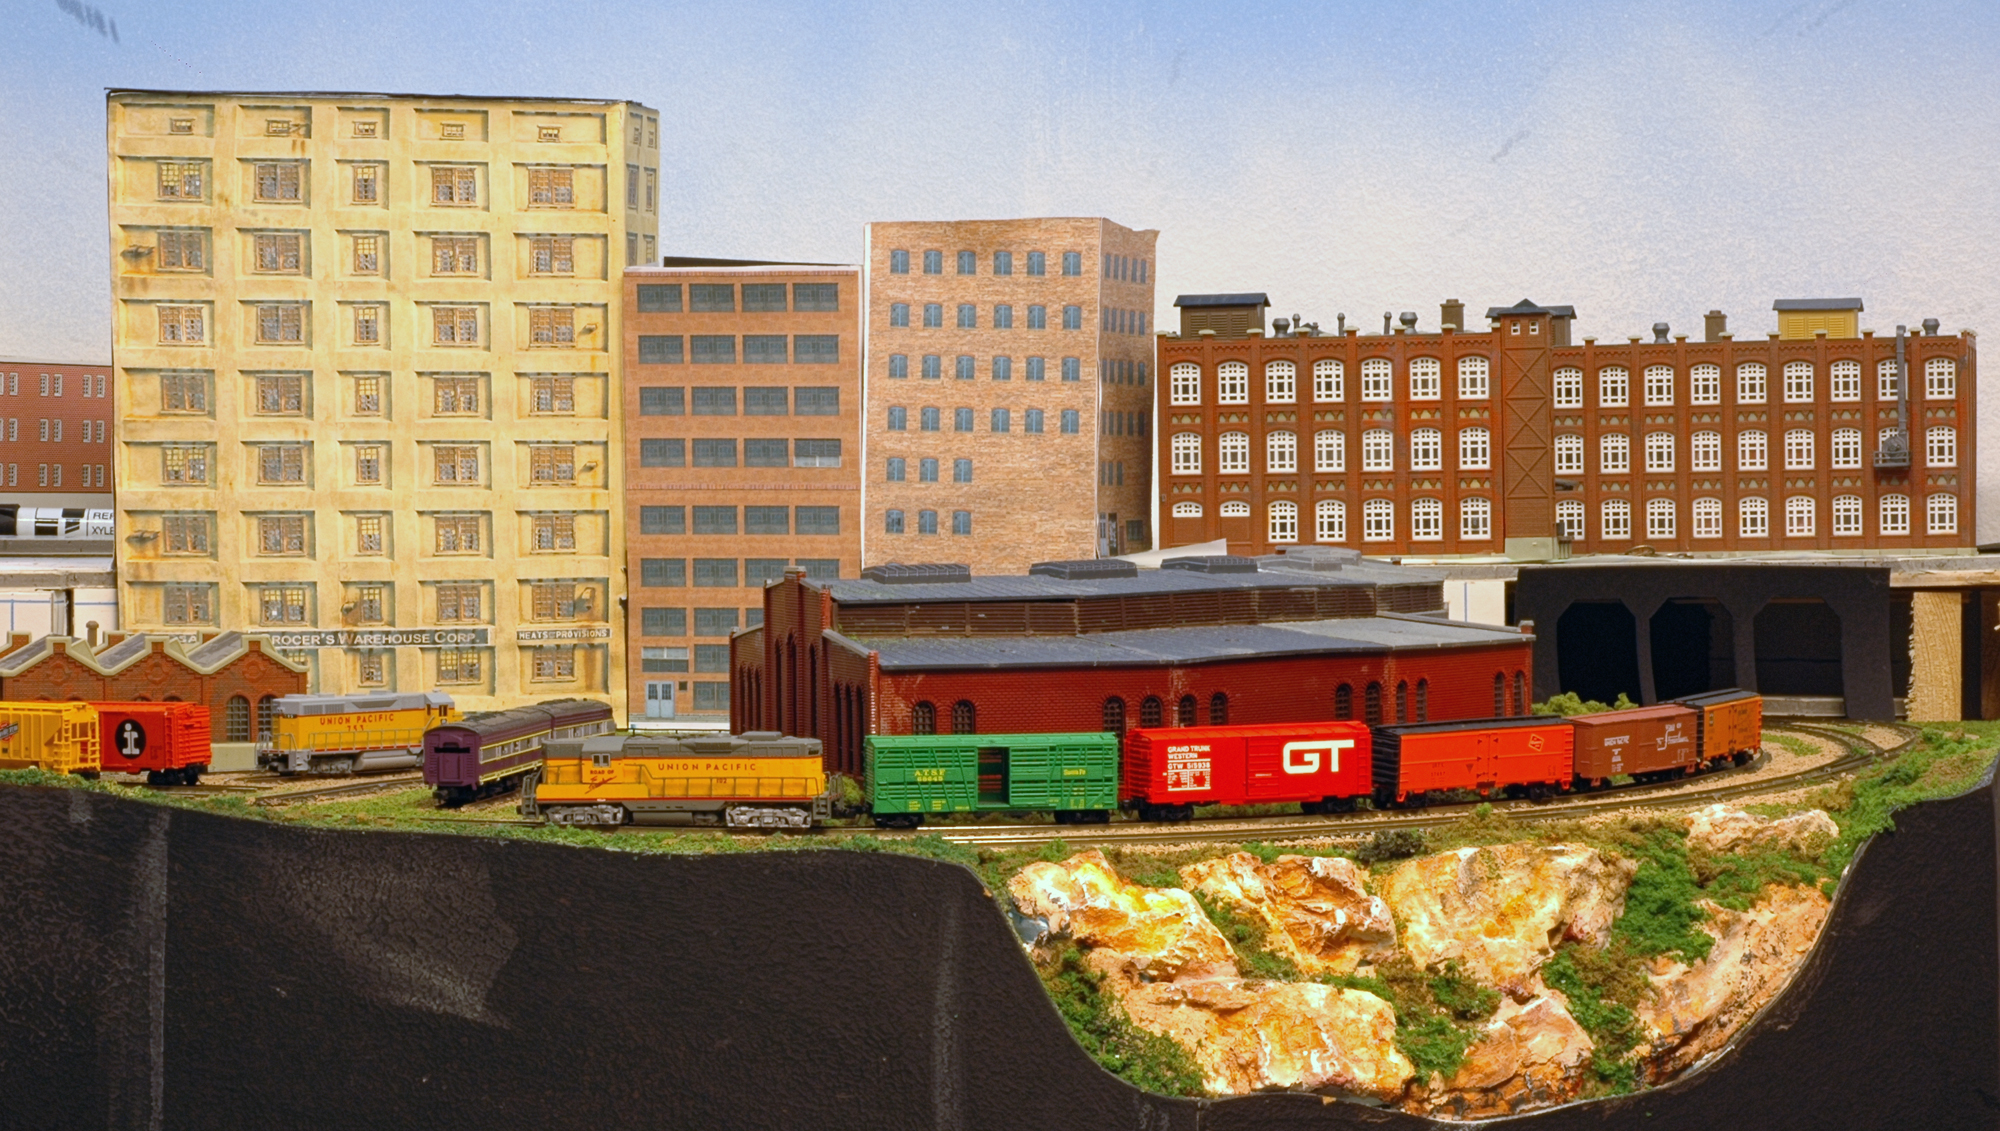 Follow the building of the new Z-scale layout in the project blog.